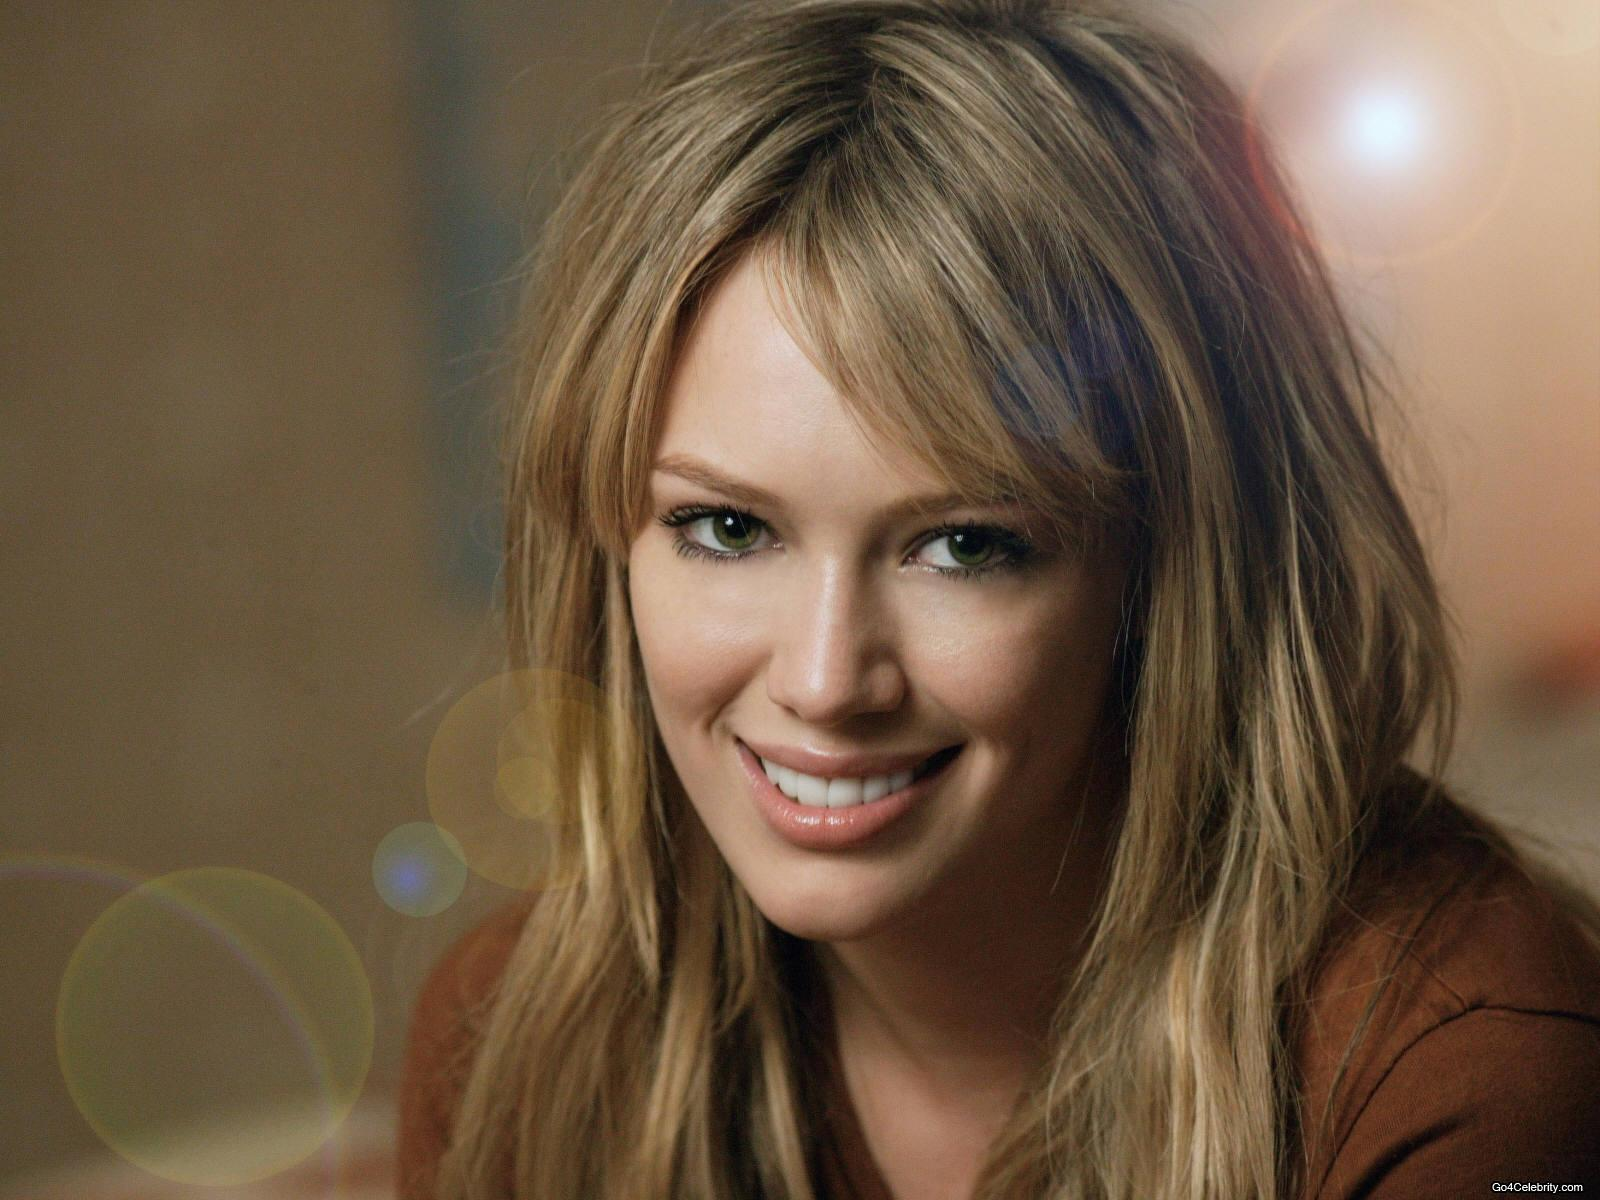 http://images1.fanpop.com/images/photos/2600000/hillary-hilary-duff-2616120-1600-1200.jpg